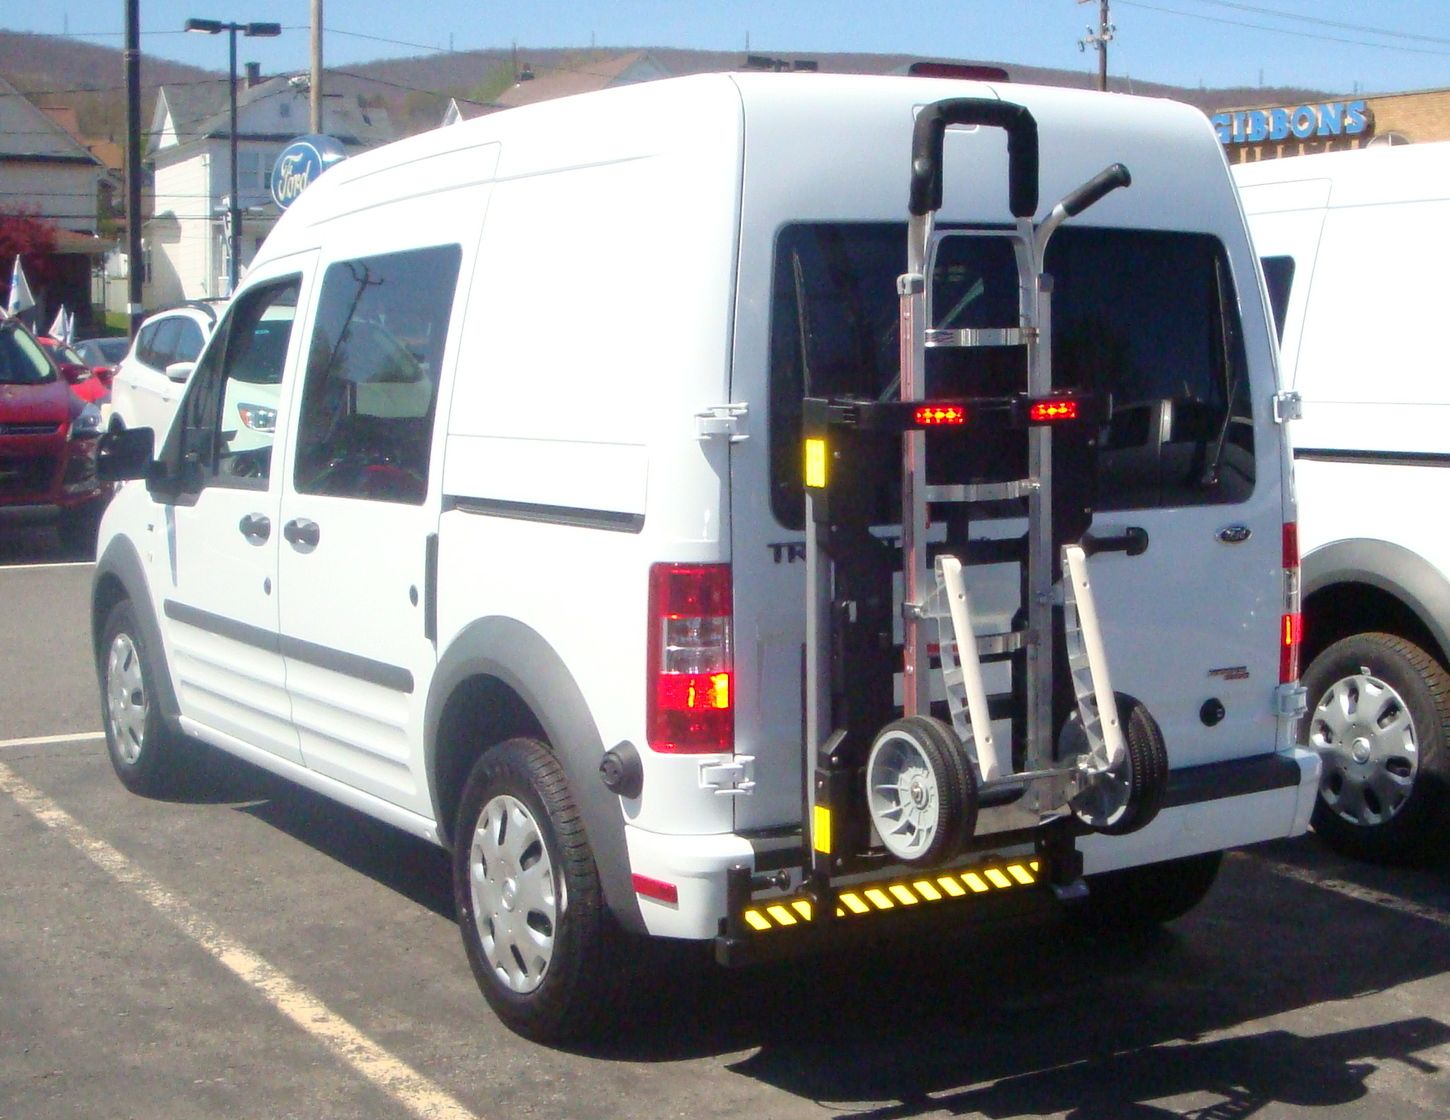 Hts systems ford transit hts20sft ultrarack unit is